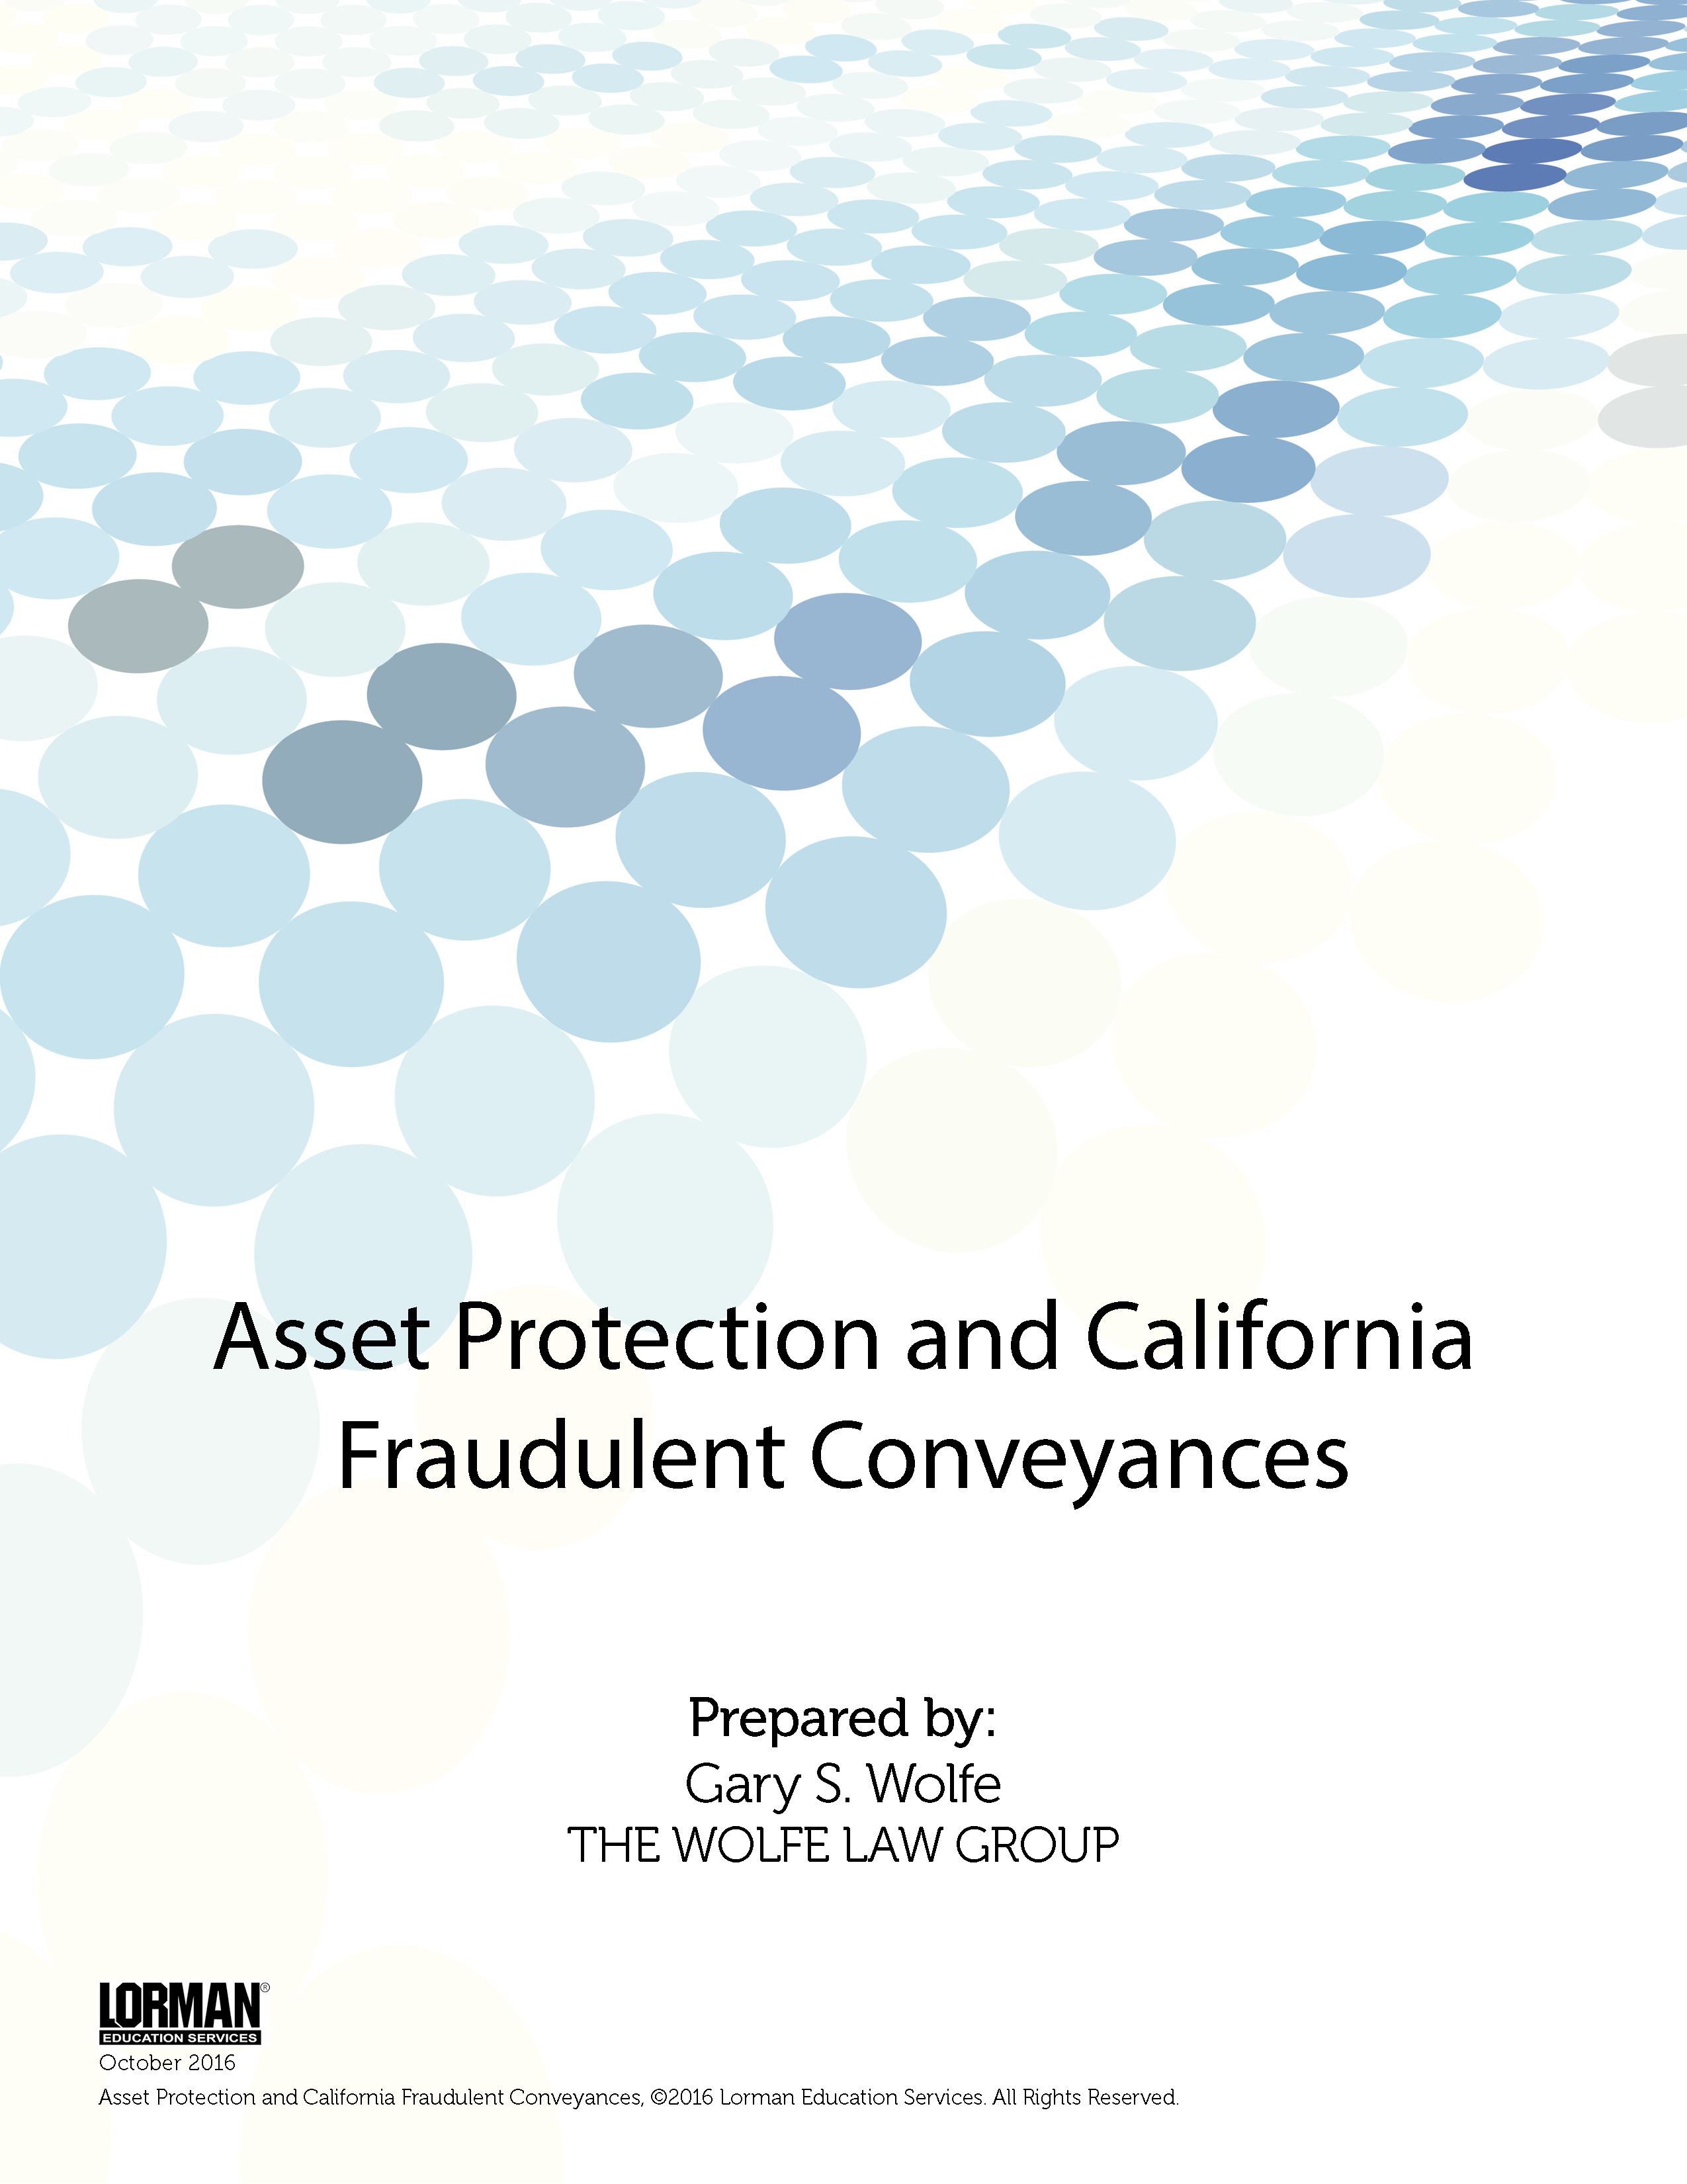 Asset Protection and California Fraudulent Conveyances